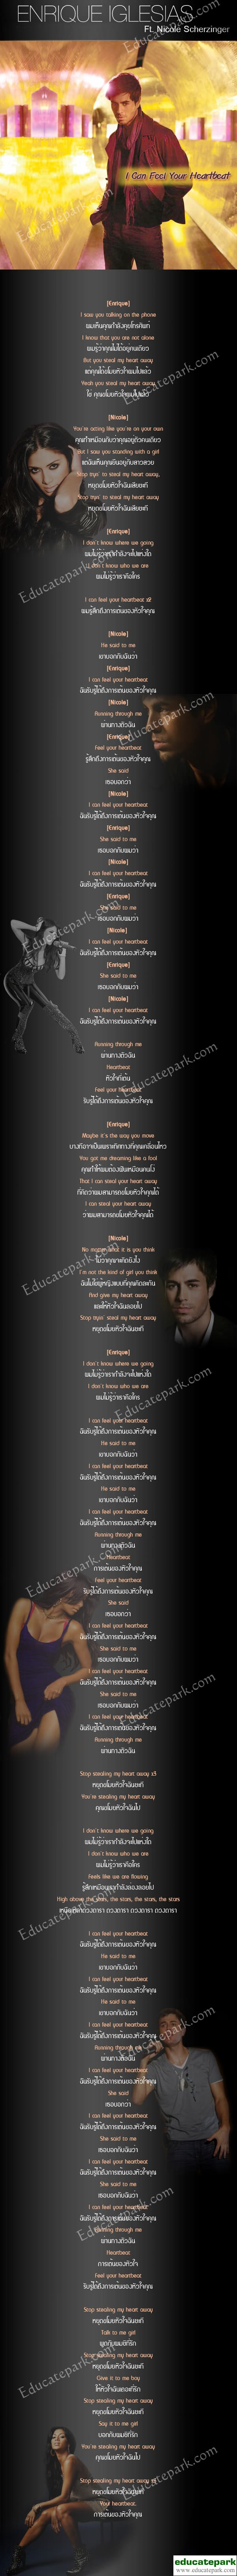 I Can Feel Your Heartbeat - Enrique Iglesias Featuring Nicole Scherzinger